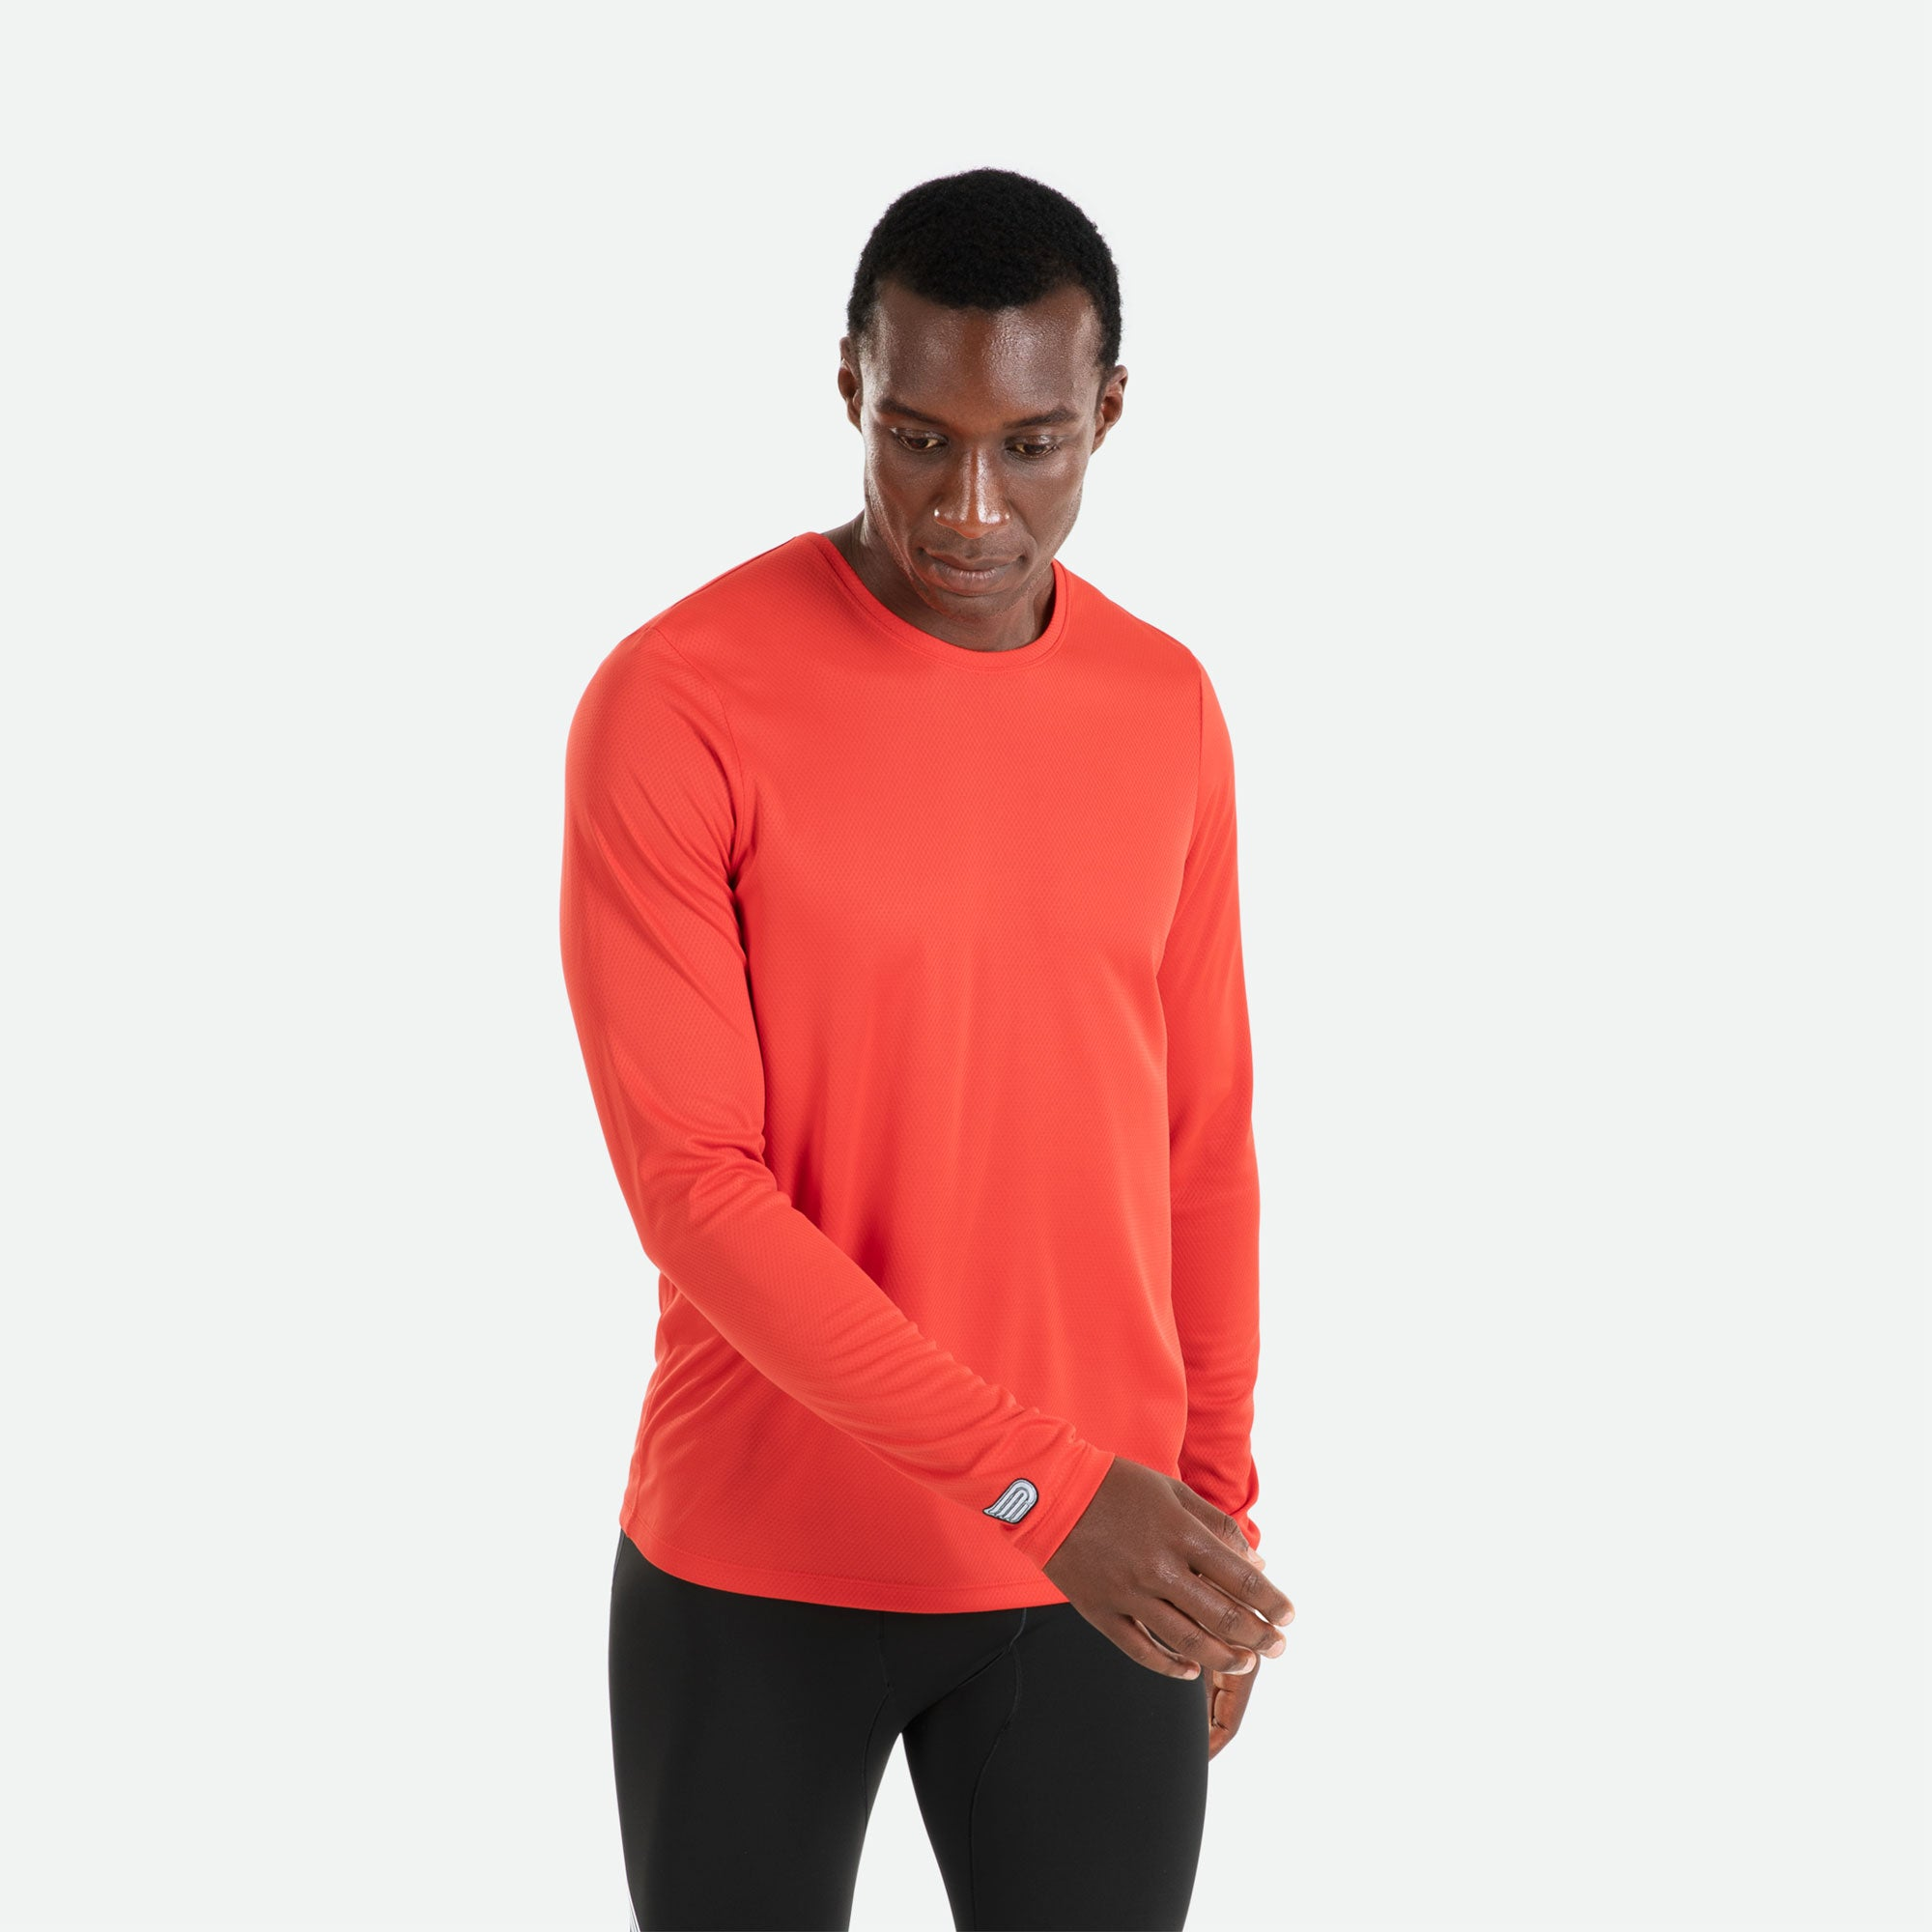 Our Pressio men's red Hāpai long sleeve t-shirt features EcoTECH MF fabric which has dual filament recycled polyester yarns from Unifi for superior moisture control to keep you dry.